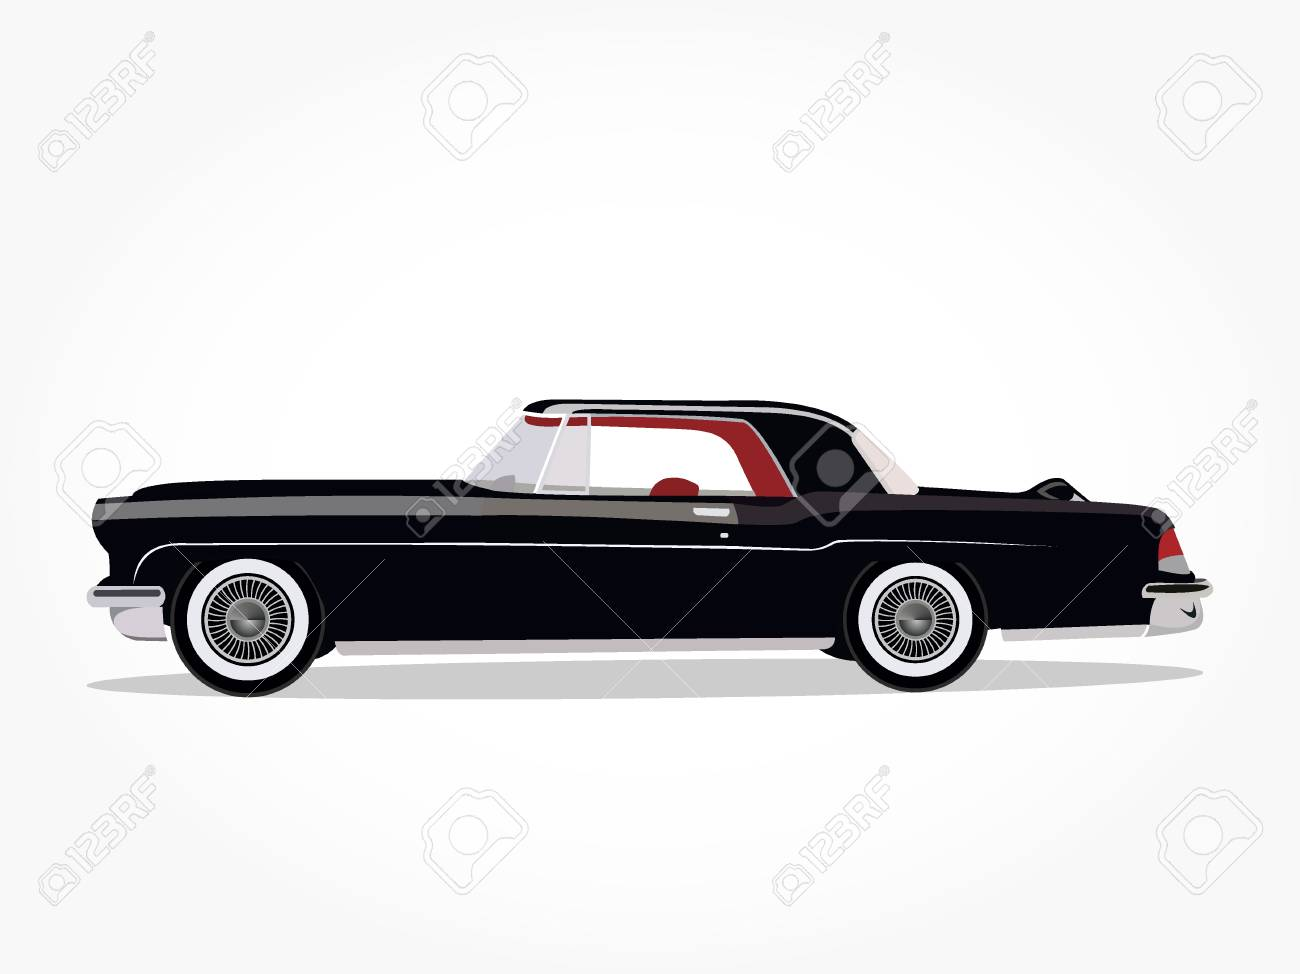 Detailed Side Of A Flat Black Car Cartoon With Shadow Effect Royalty